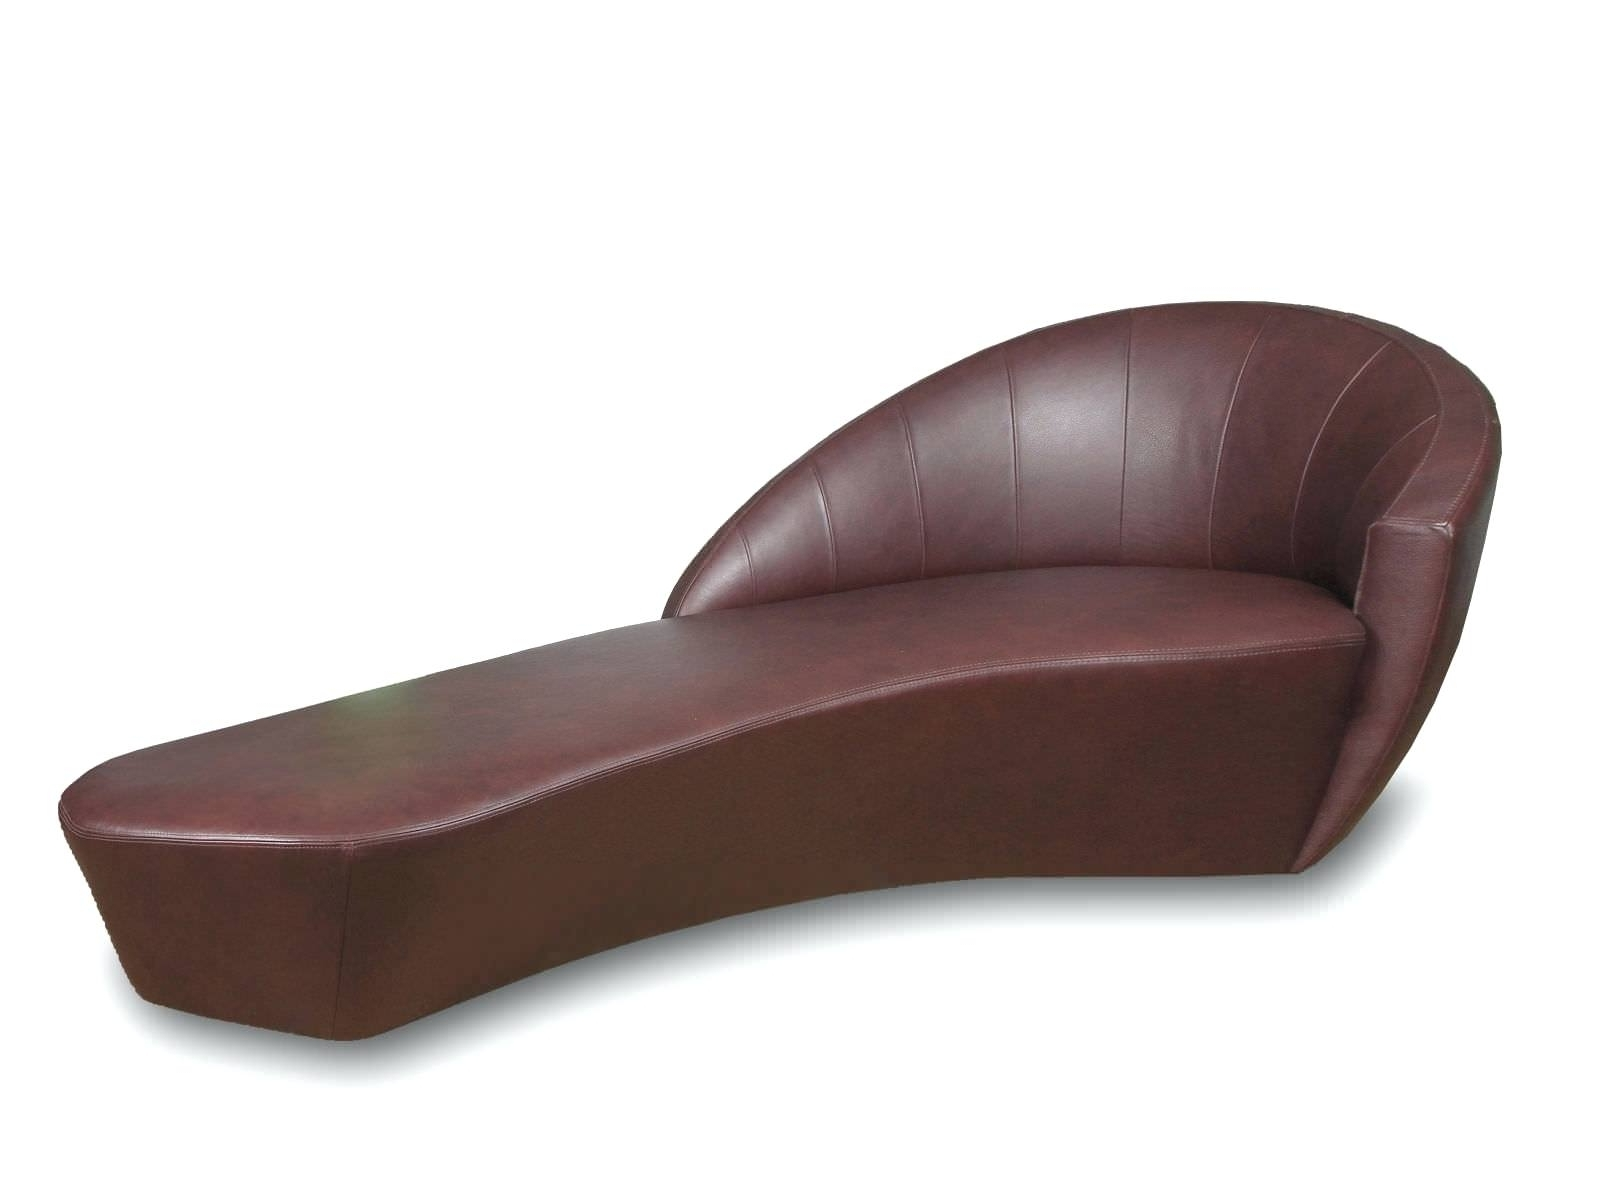 15 Best Curved Chaise Lounges